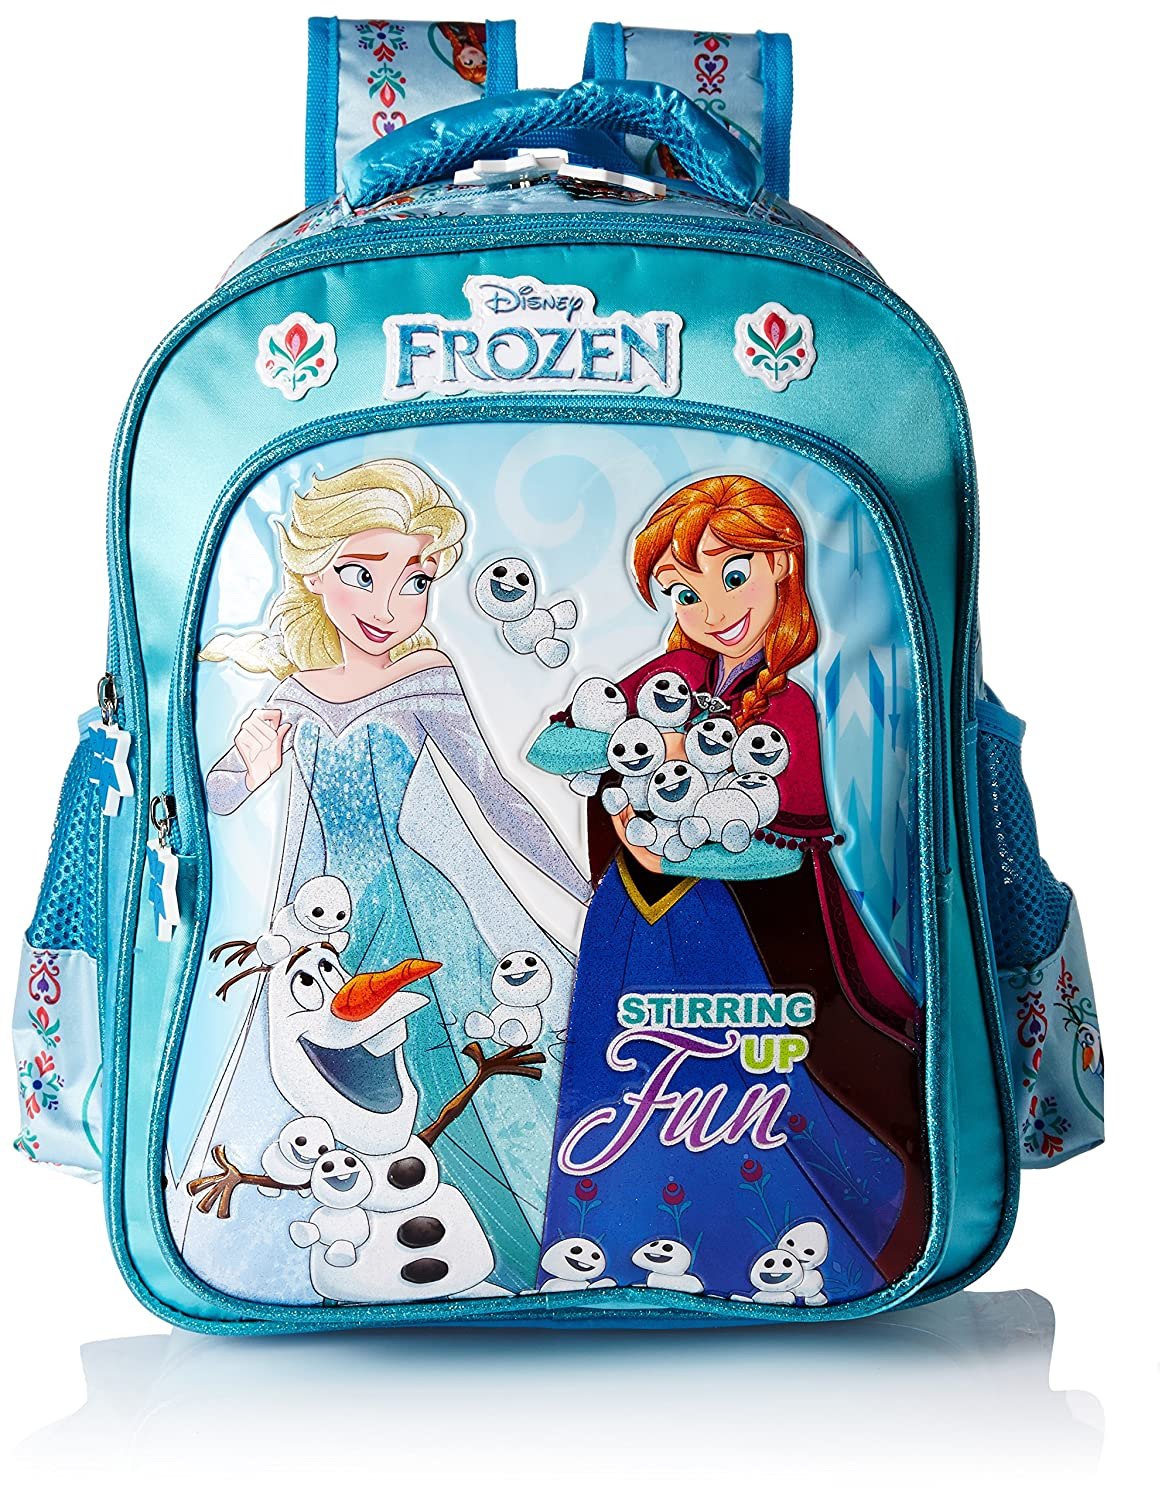 Frozen Magic Blue School Bag for Children of Age Group 3 - 5